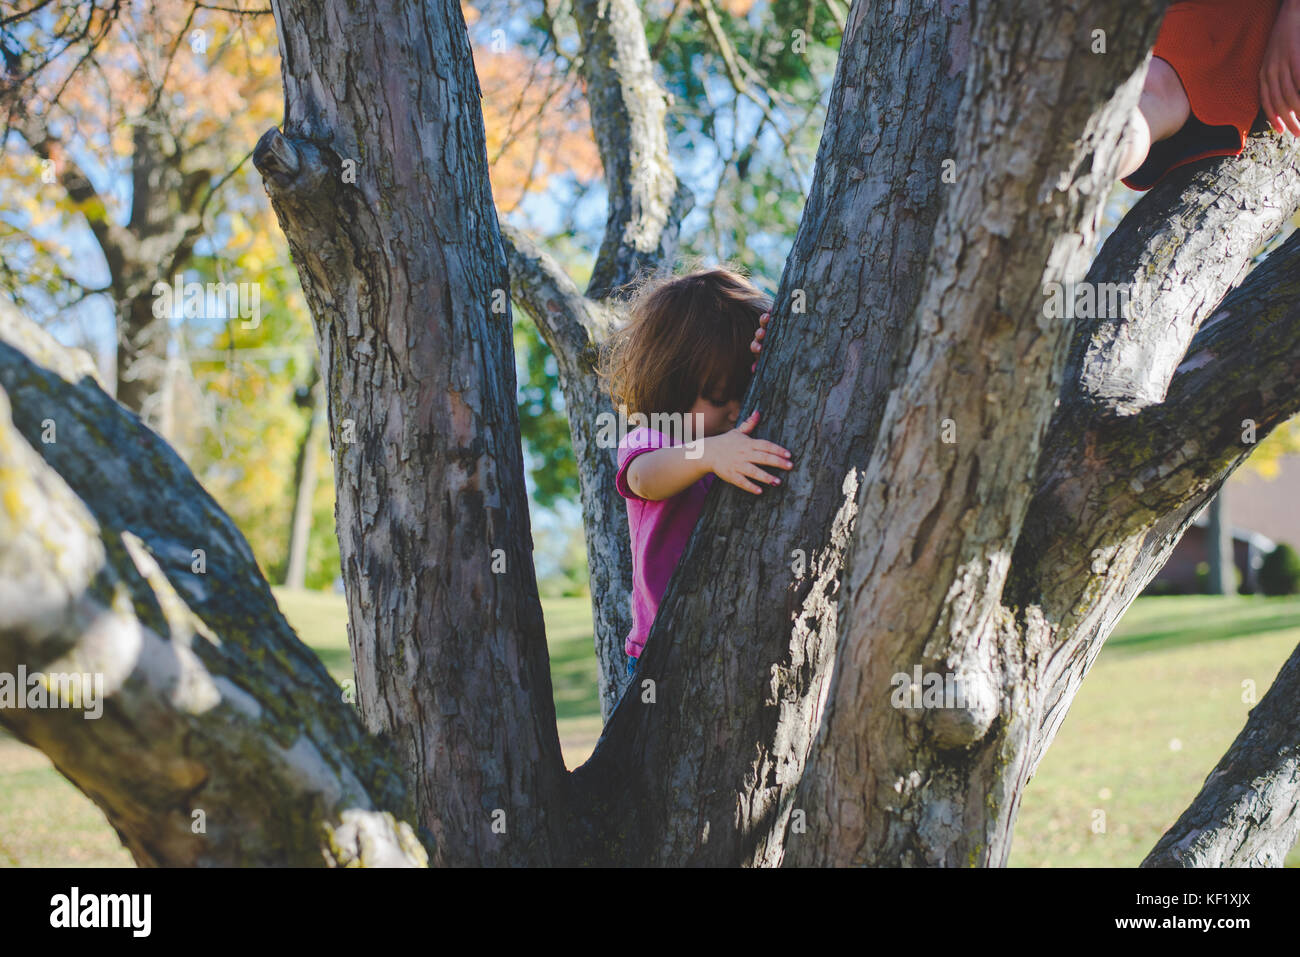 Child climbing a tree - Stock Image